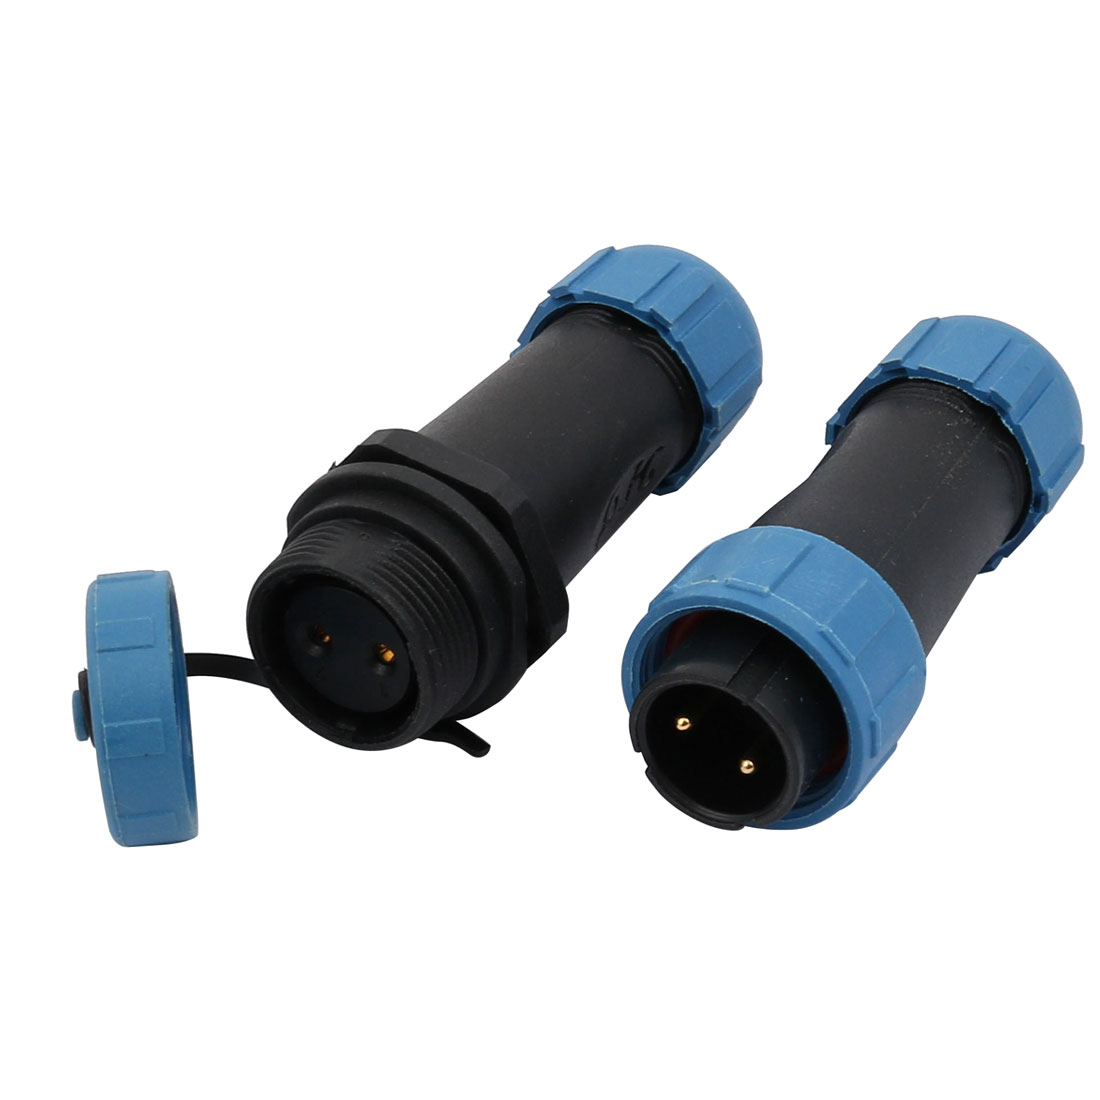 Pair 2 Terminals Male to Female Aviation Electrical Power Cable Connector SD16-2